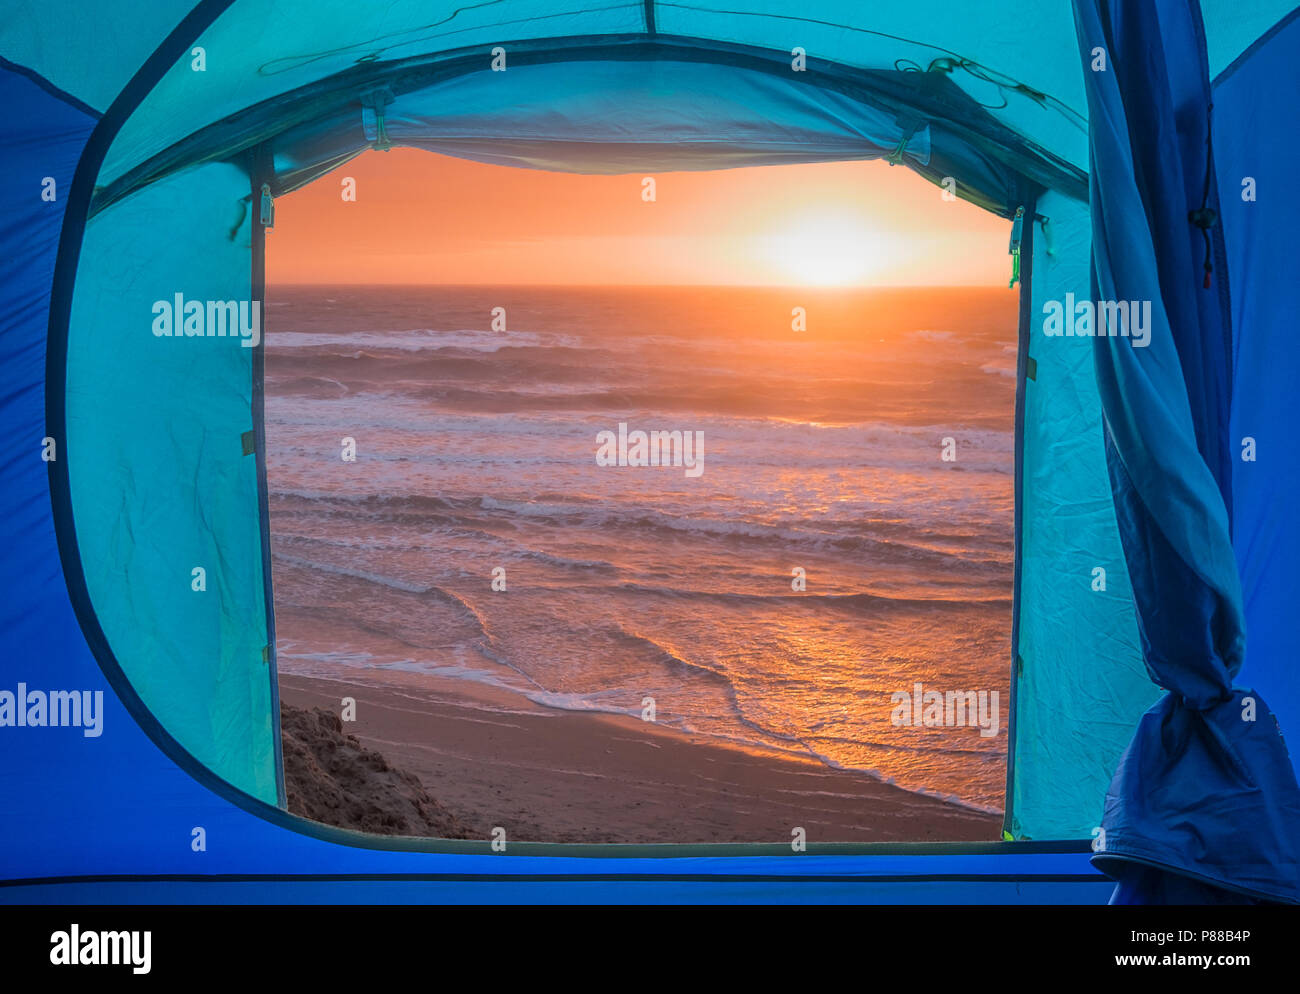 View from inside a tent onto a sunset over a beach and sea, Isle of Mull, Scotland. Stock Photo